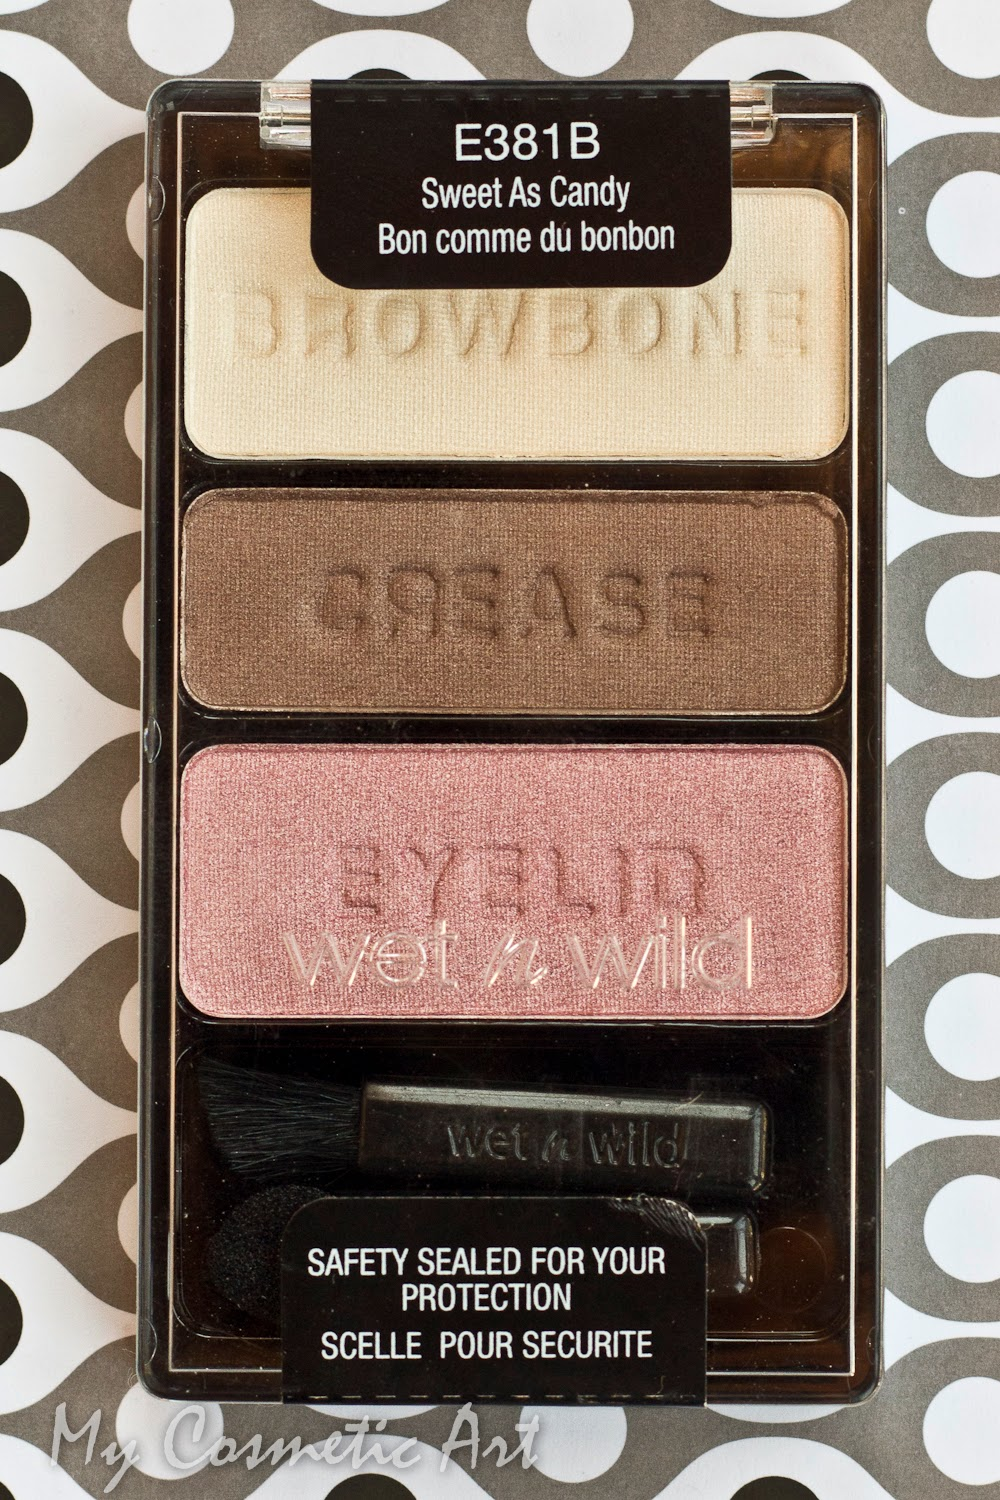 Sweet as Candy, uno de los tríos de sombras de Wet'n'Wild